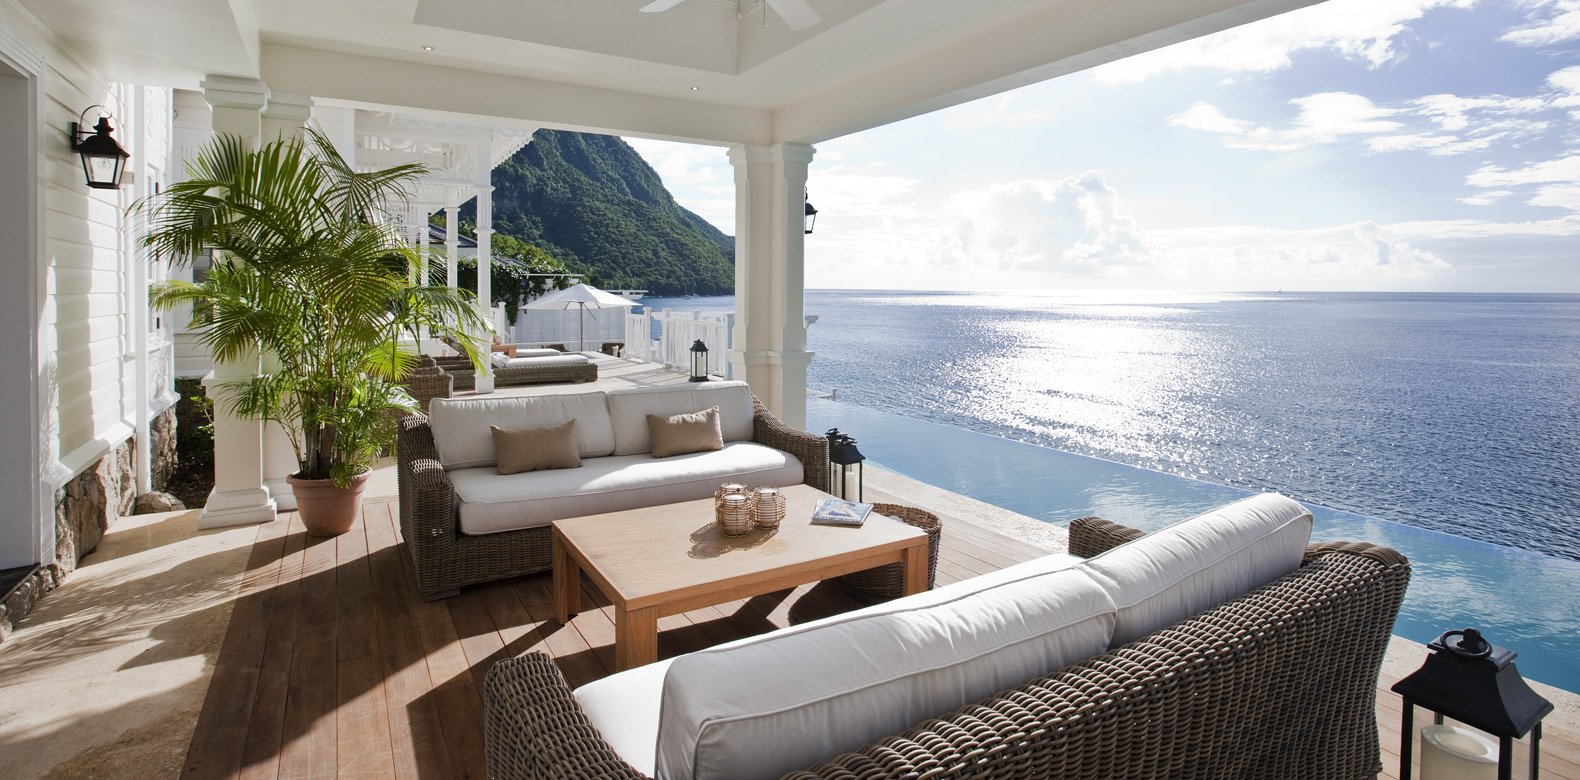 A Sweet Deal To Be Had On St. Lucia